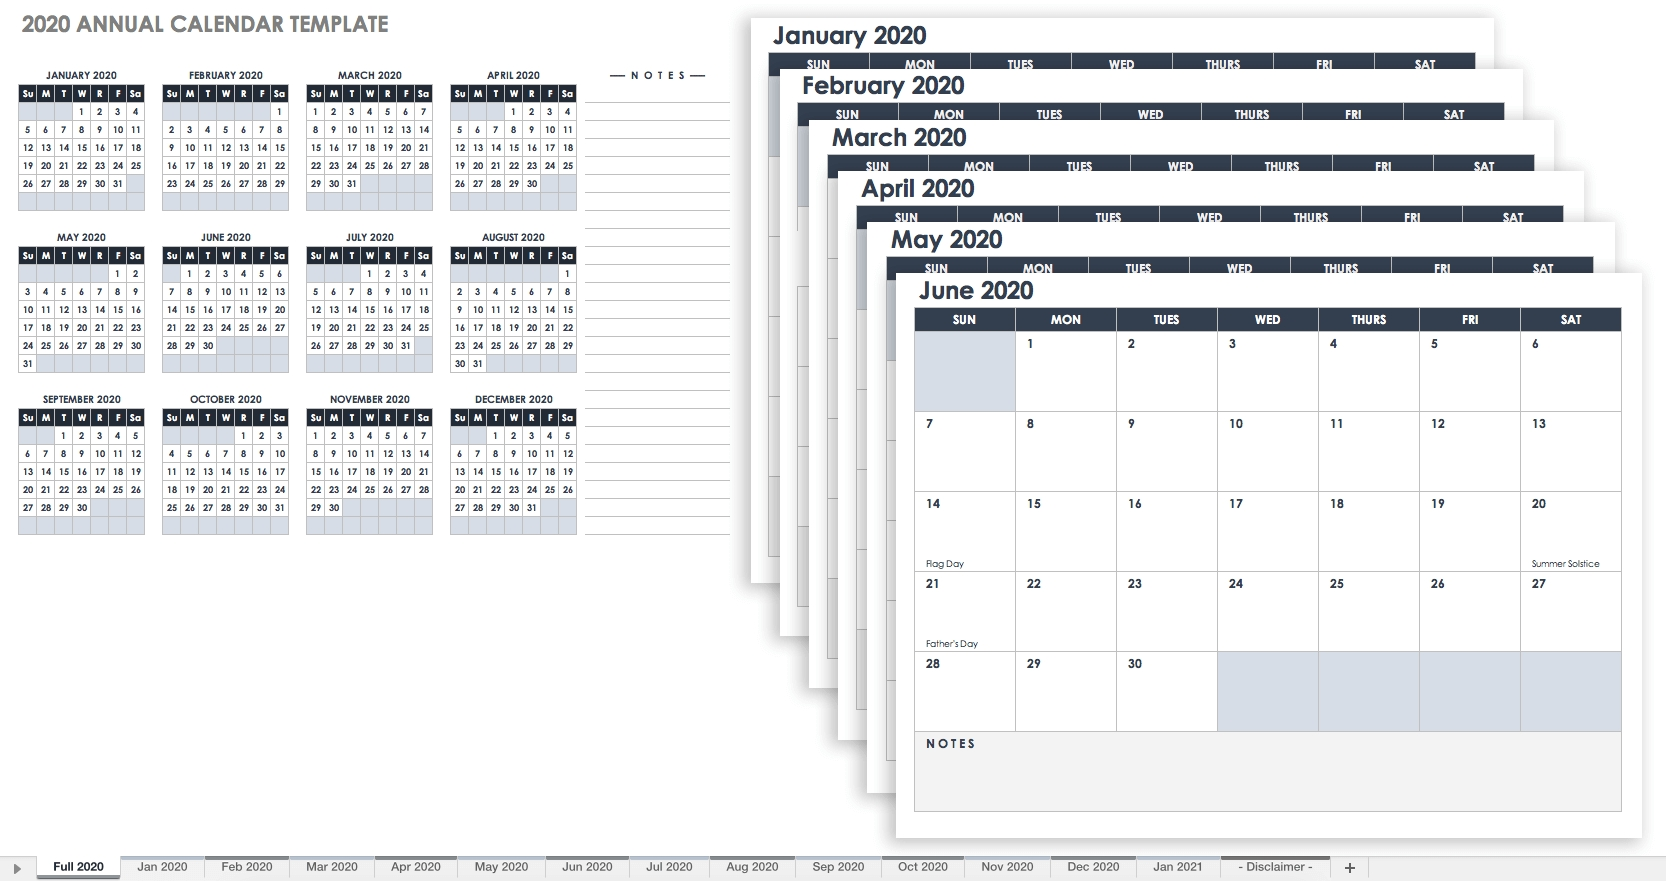 Free Blank Calendar Templates - Smartsheet throughout 2020 Free Printable Emploee Calendars